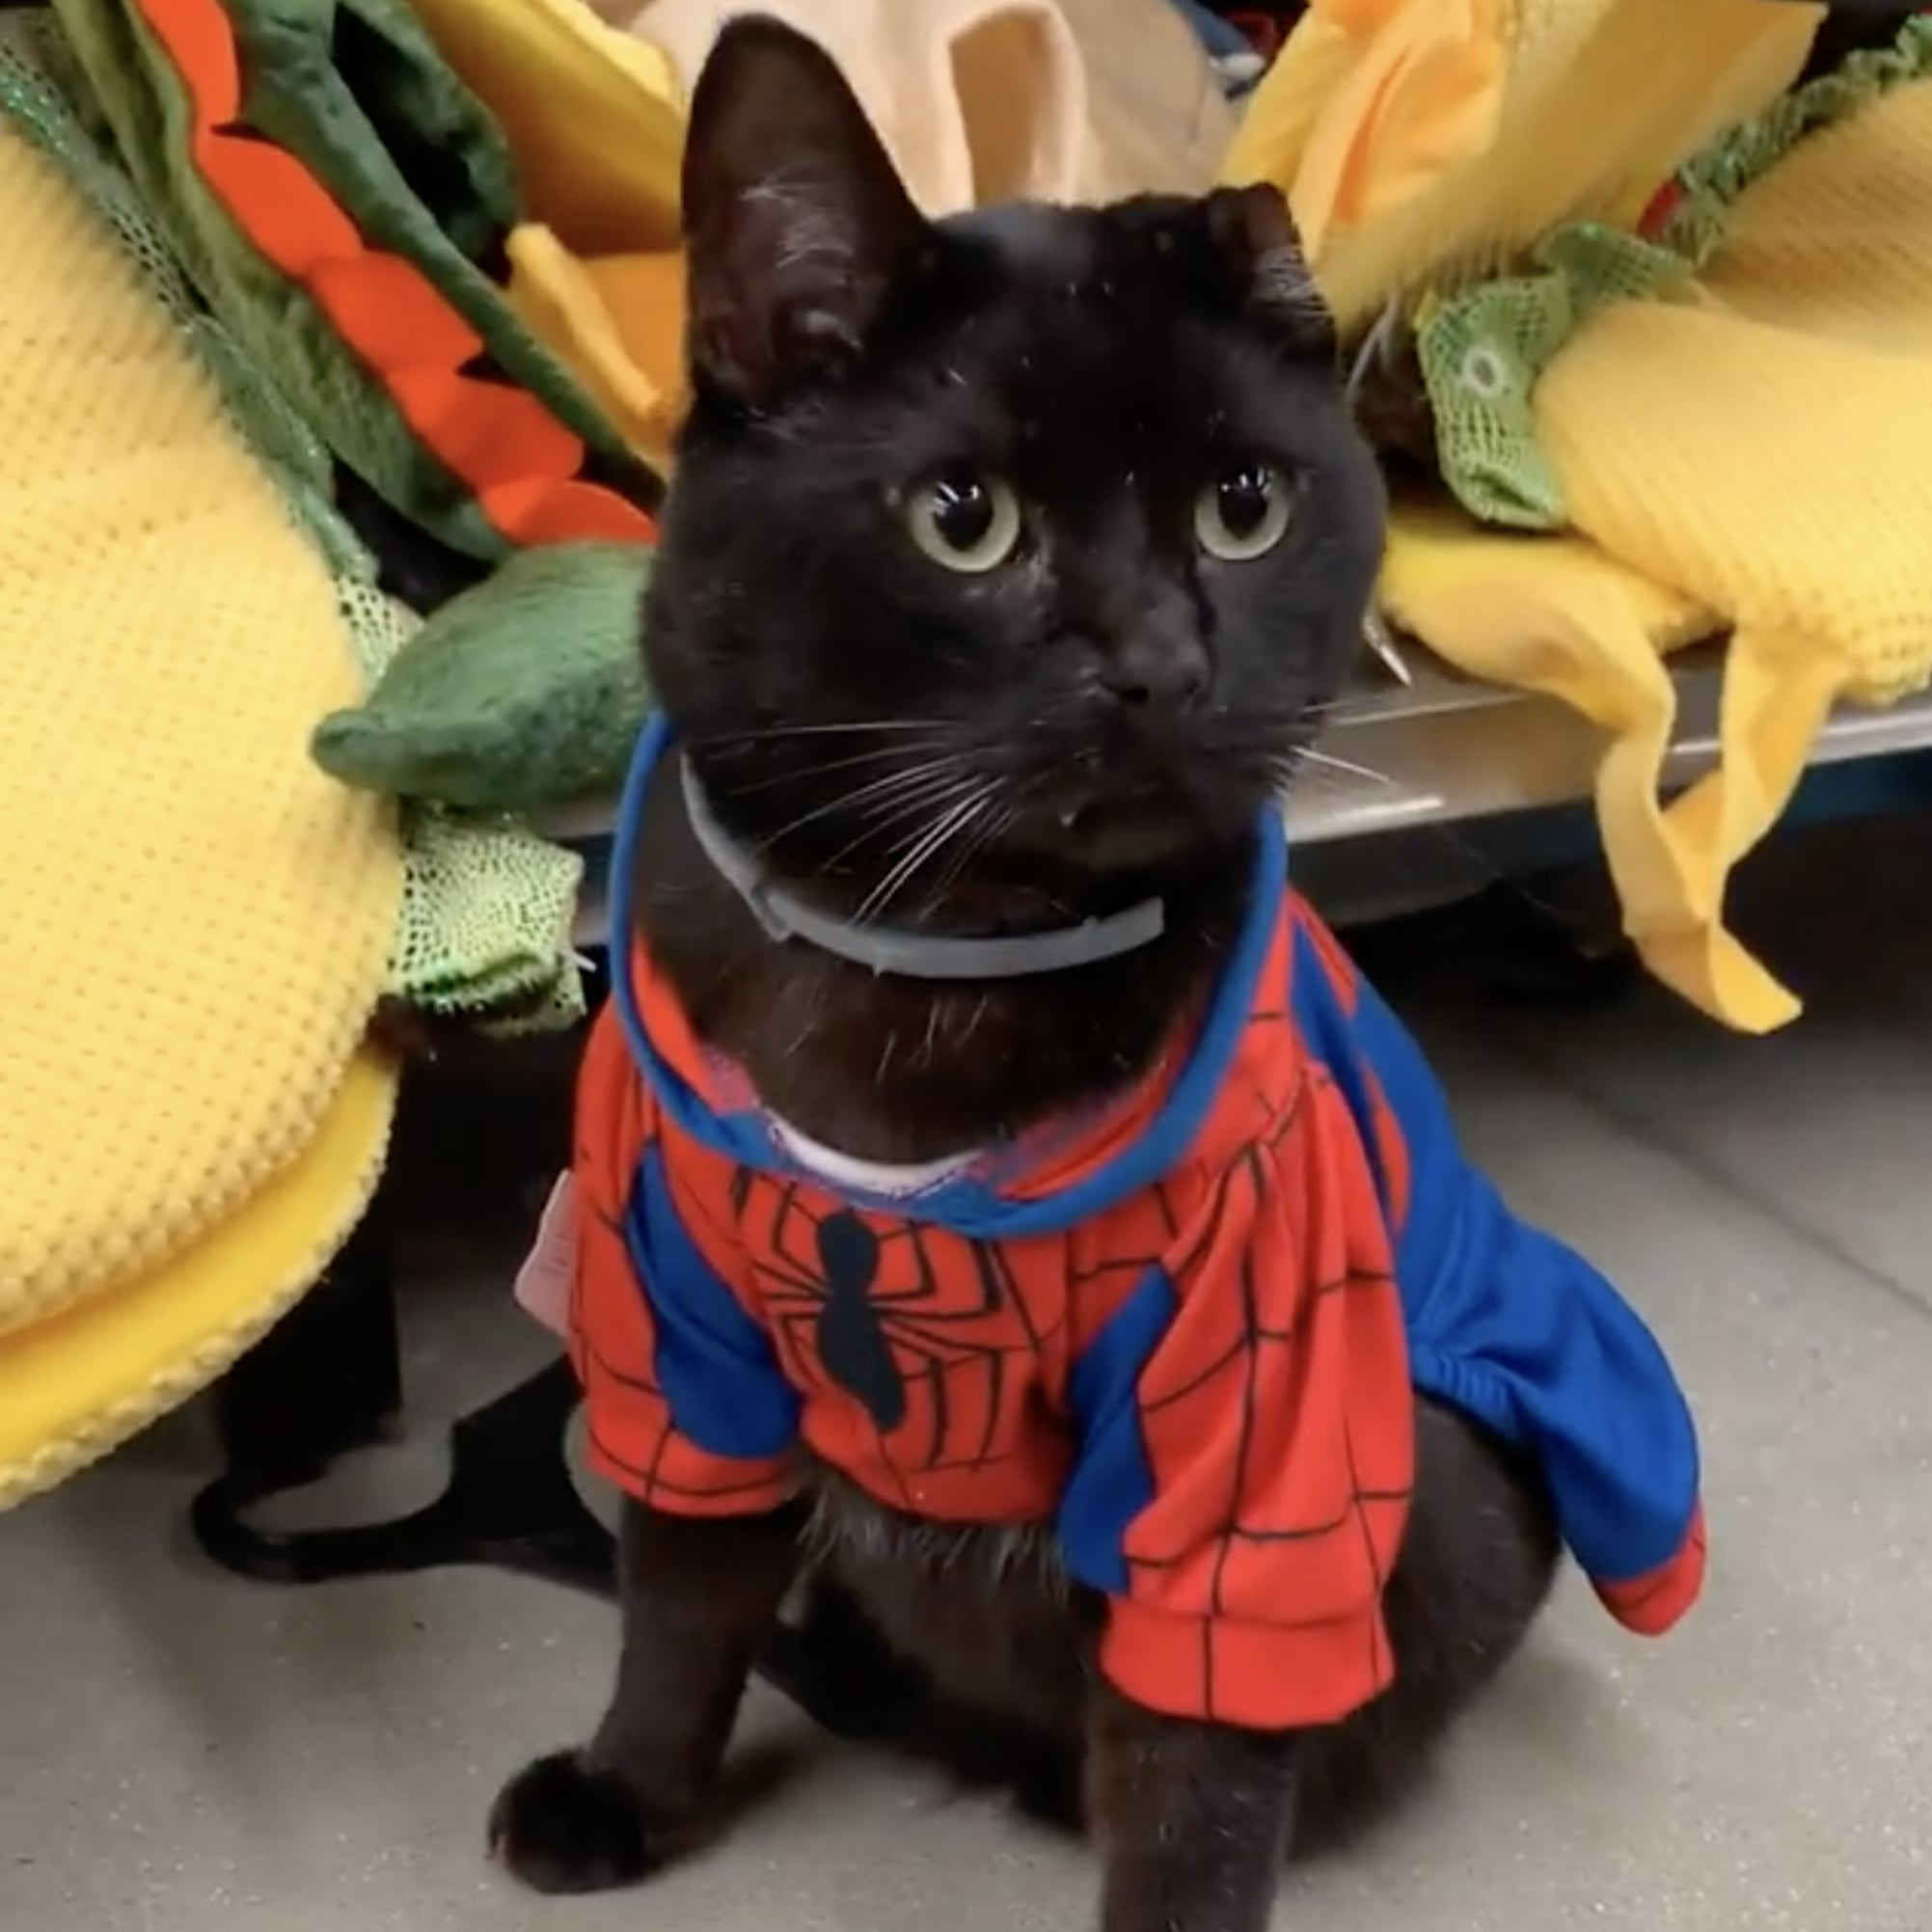 Uno the Cat Trying on Halloween Costumes in Petco